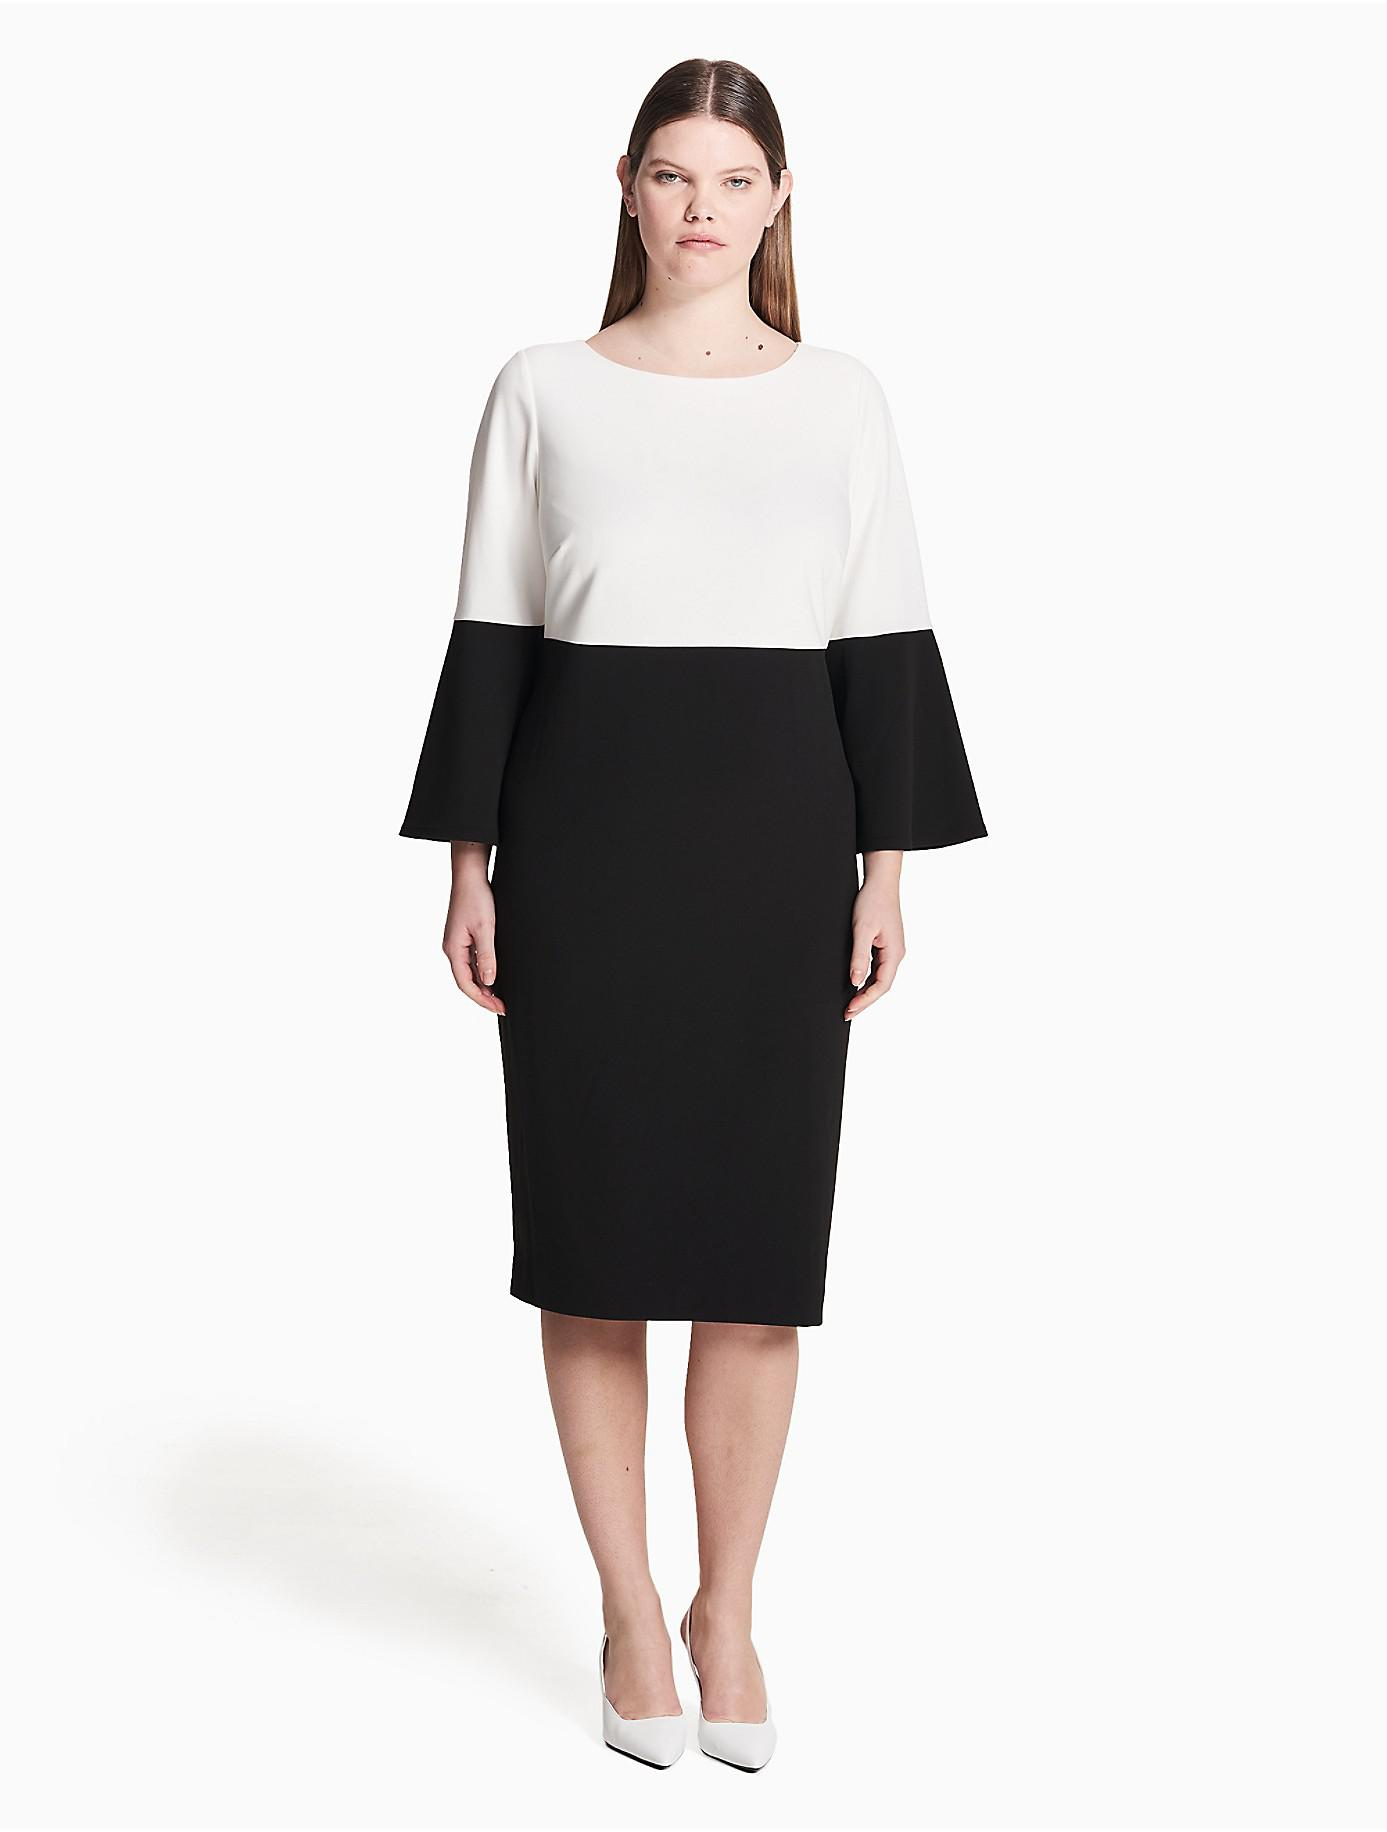 CALVIN KLEIN 205W39NYC Synthetic Plus Size Colorblock Bell ...